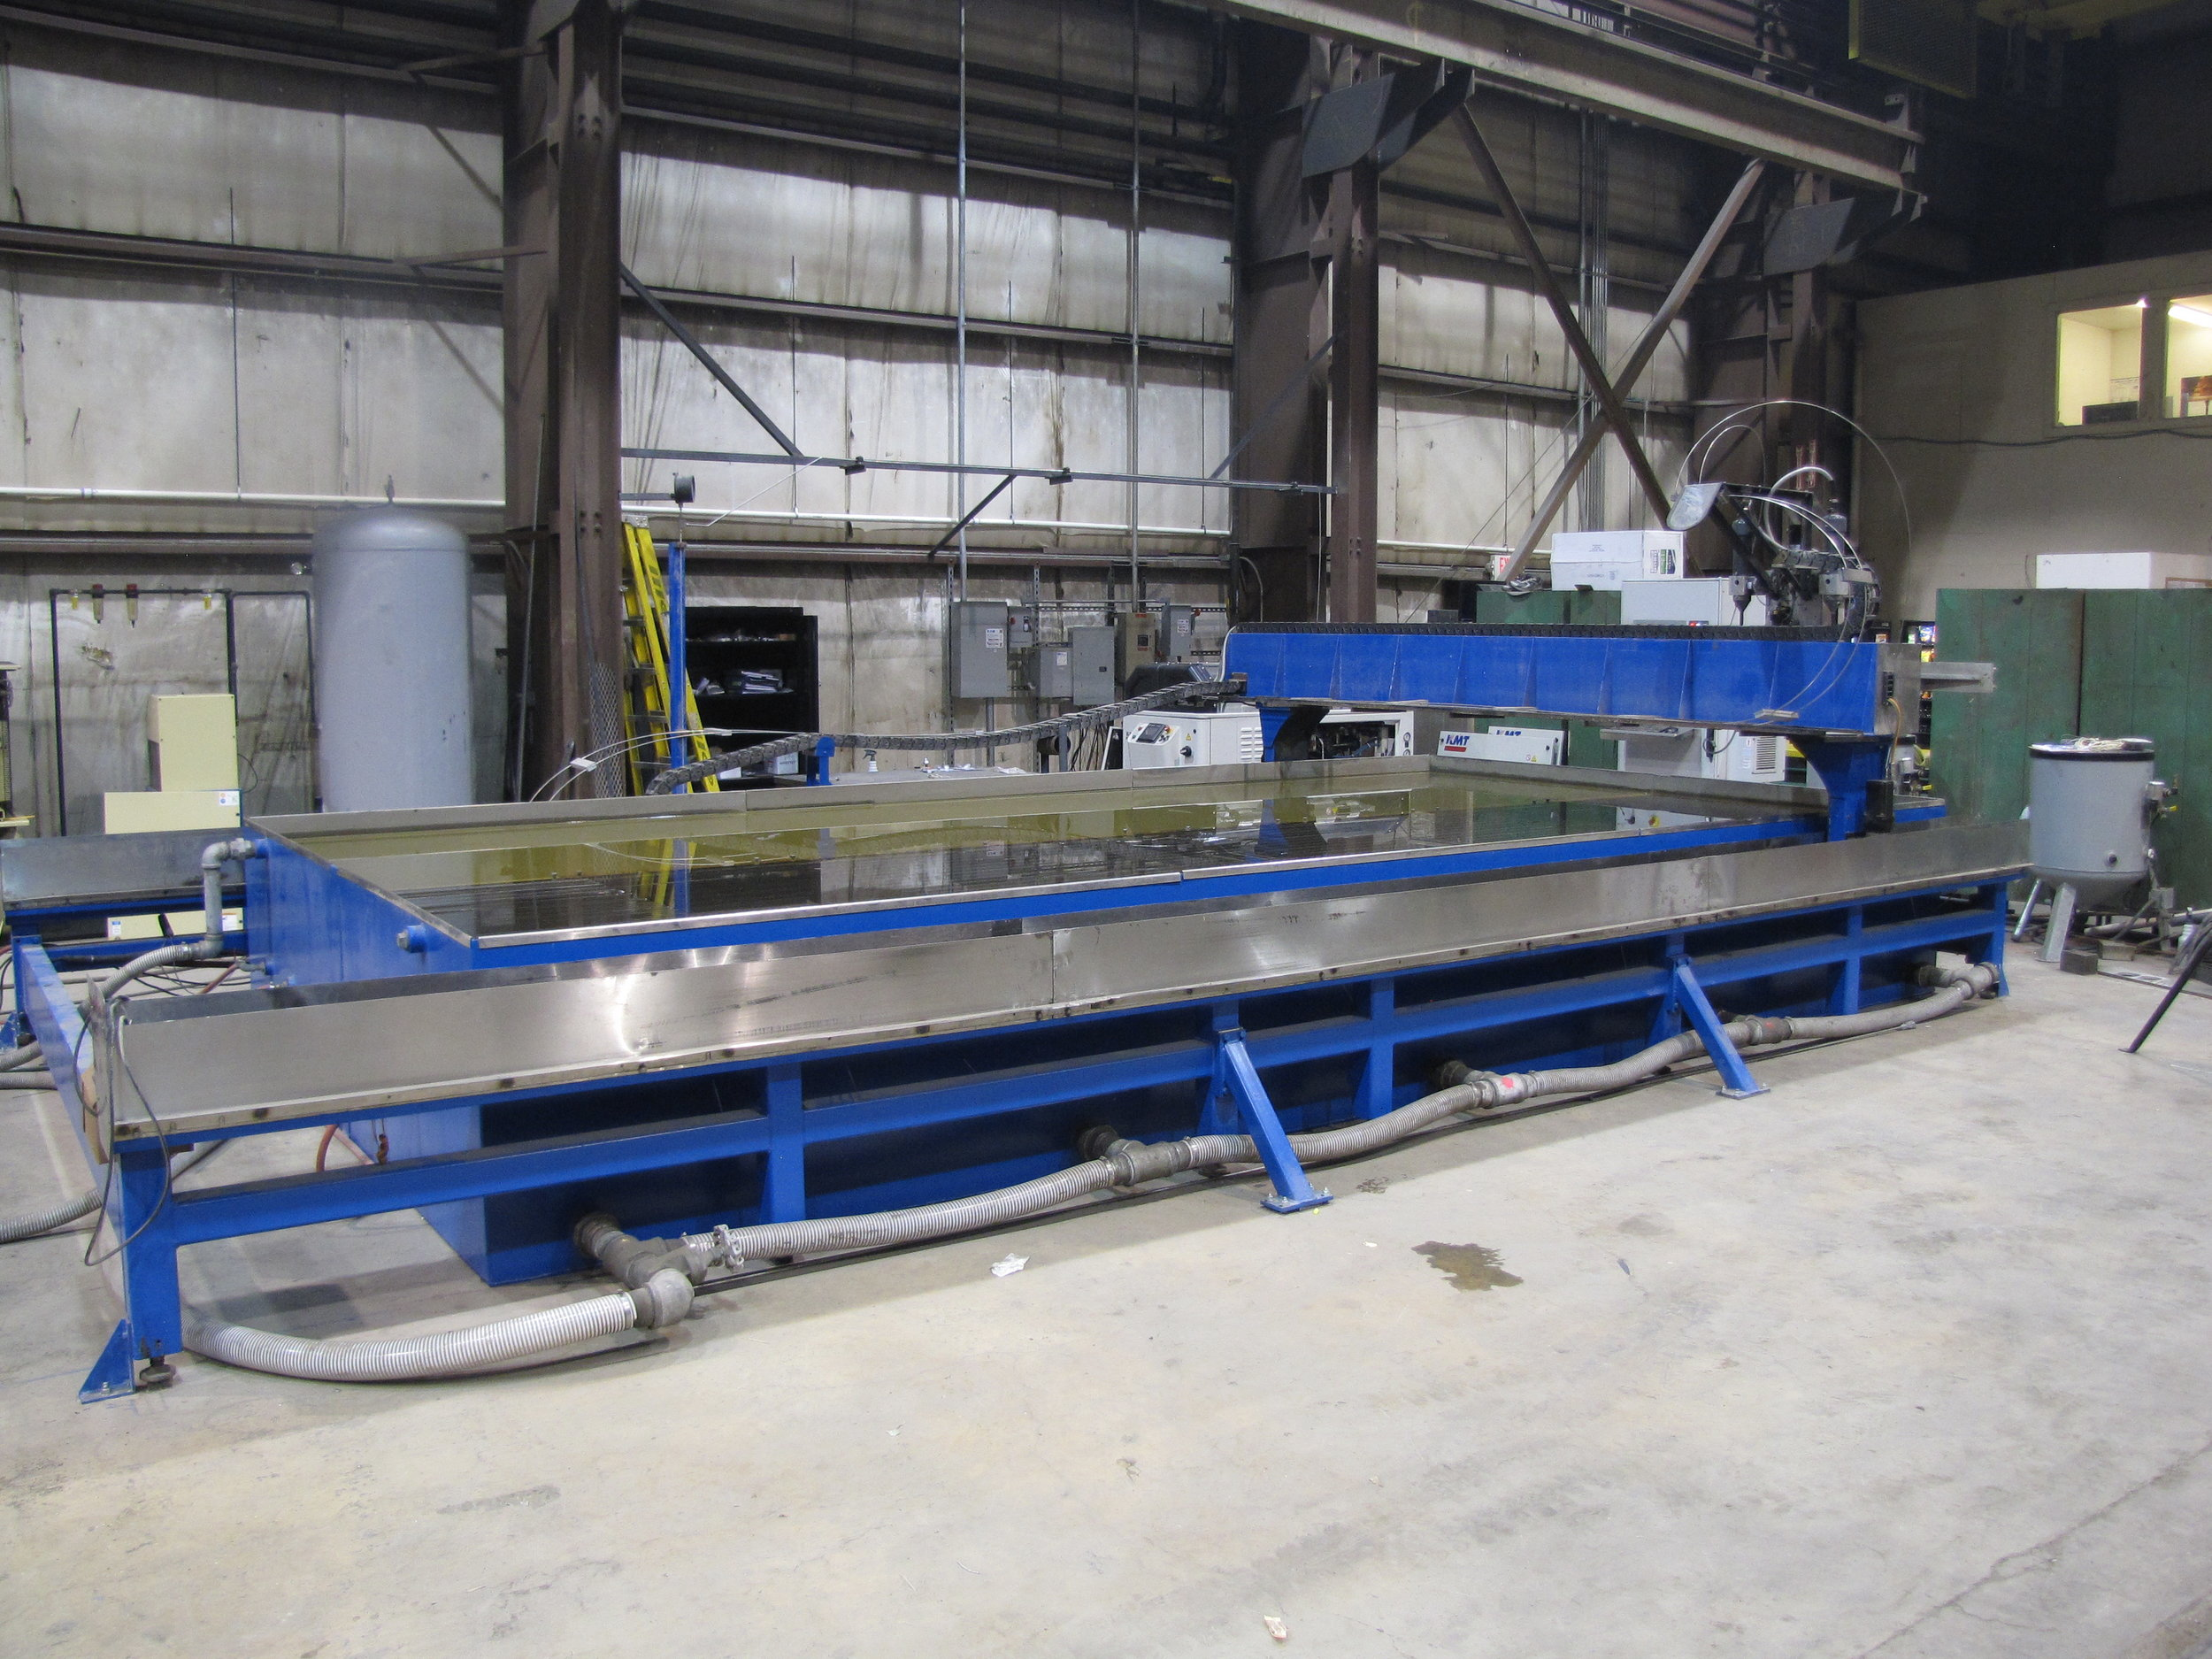 """Ohio Steel's newest addition to our burning capabilities is a Romeo CNC Waterjet machine. The x-axis travel 245.488"""" and y-axis travel is 112.625. The KMT Streamline water intensifier operates at 60,000 psi with single or dual heads cutting from 3"""" to 61"""" inches apart. Any material can be cut up to 6"""" thick. The abrasive garnet mixed with high pressure water allows for clean burning on harder materials, cutting down on cleaning, grinding, and prep time for your raw materials."""